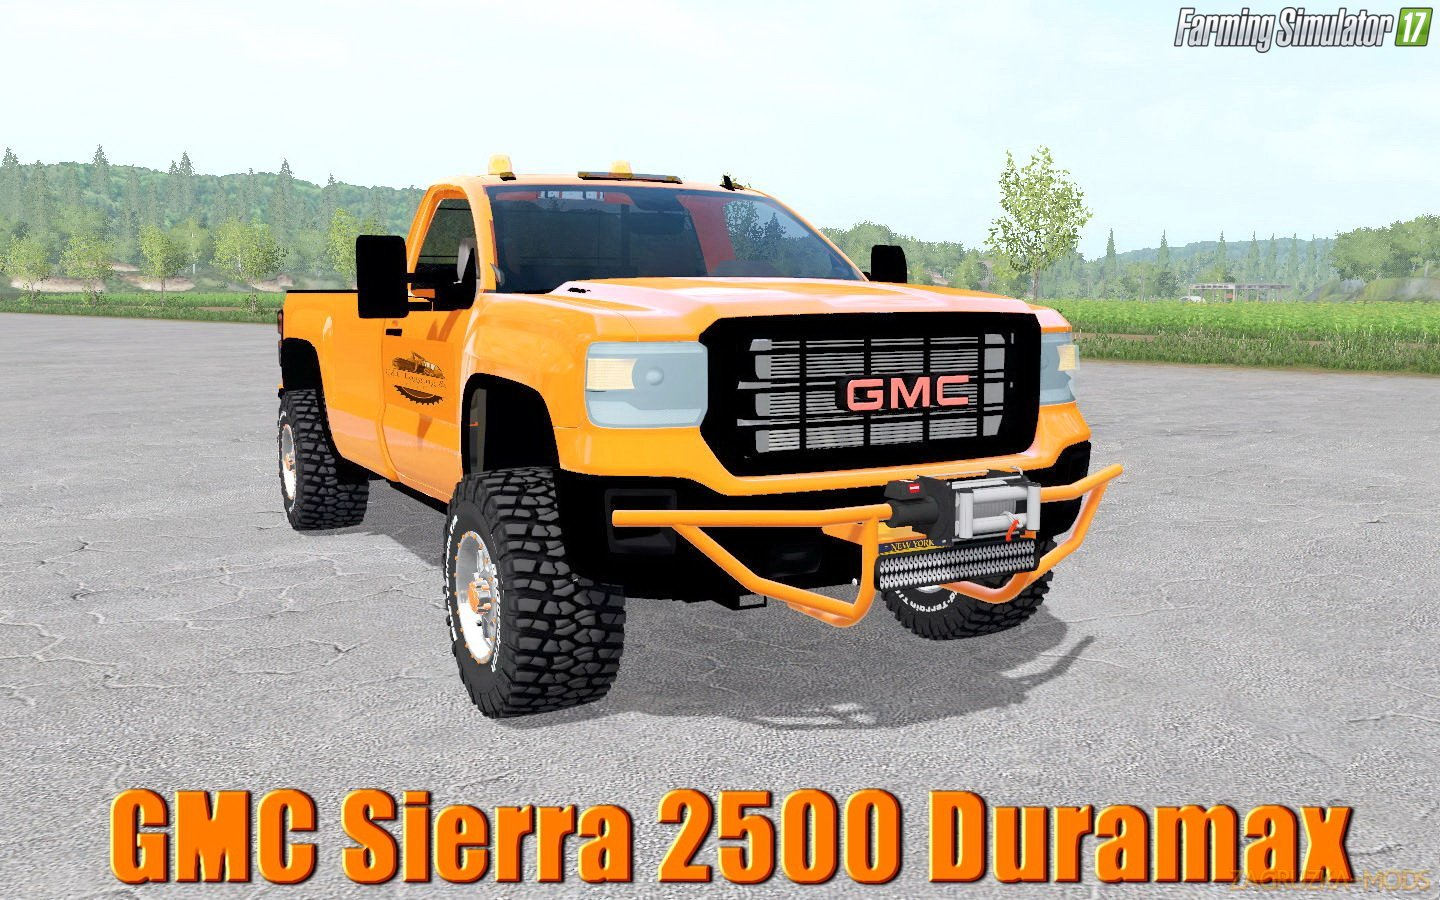 GMC Sierra 2500 Duramax v1.0 for FS17